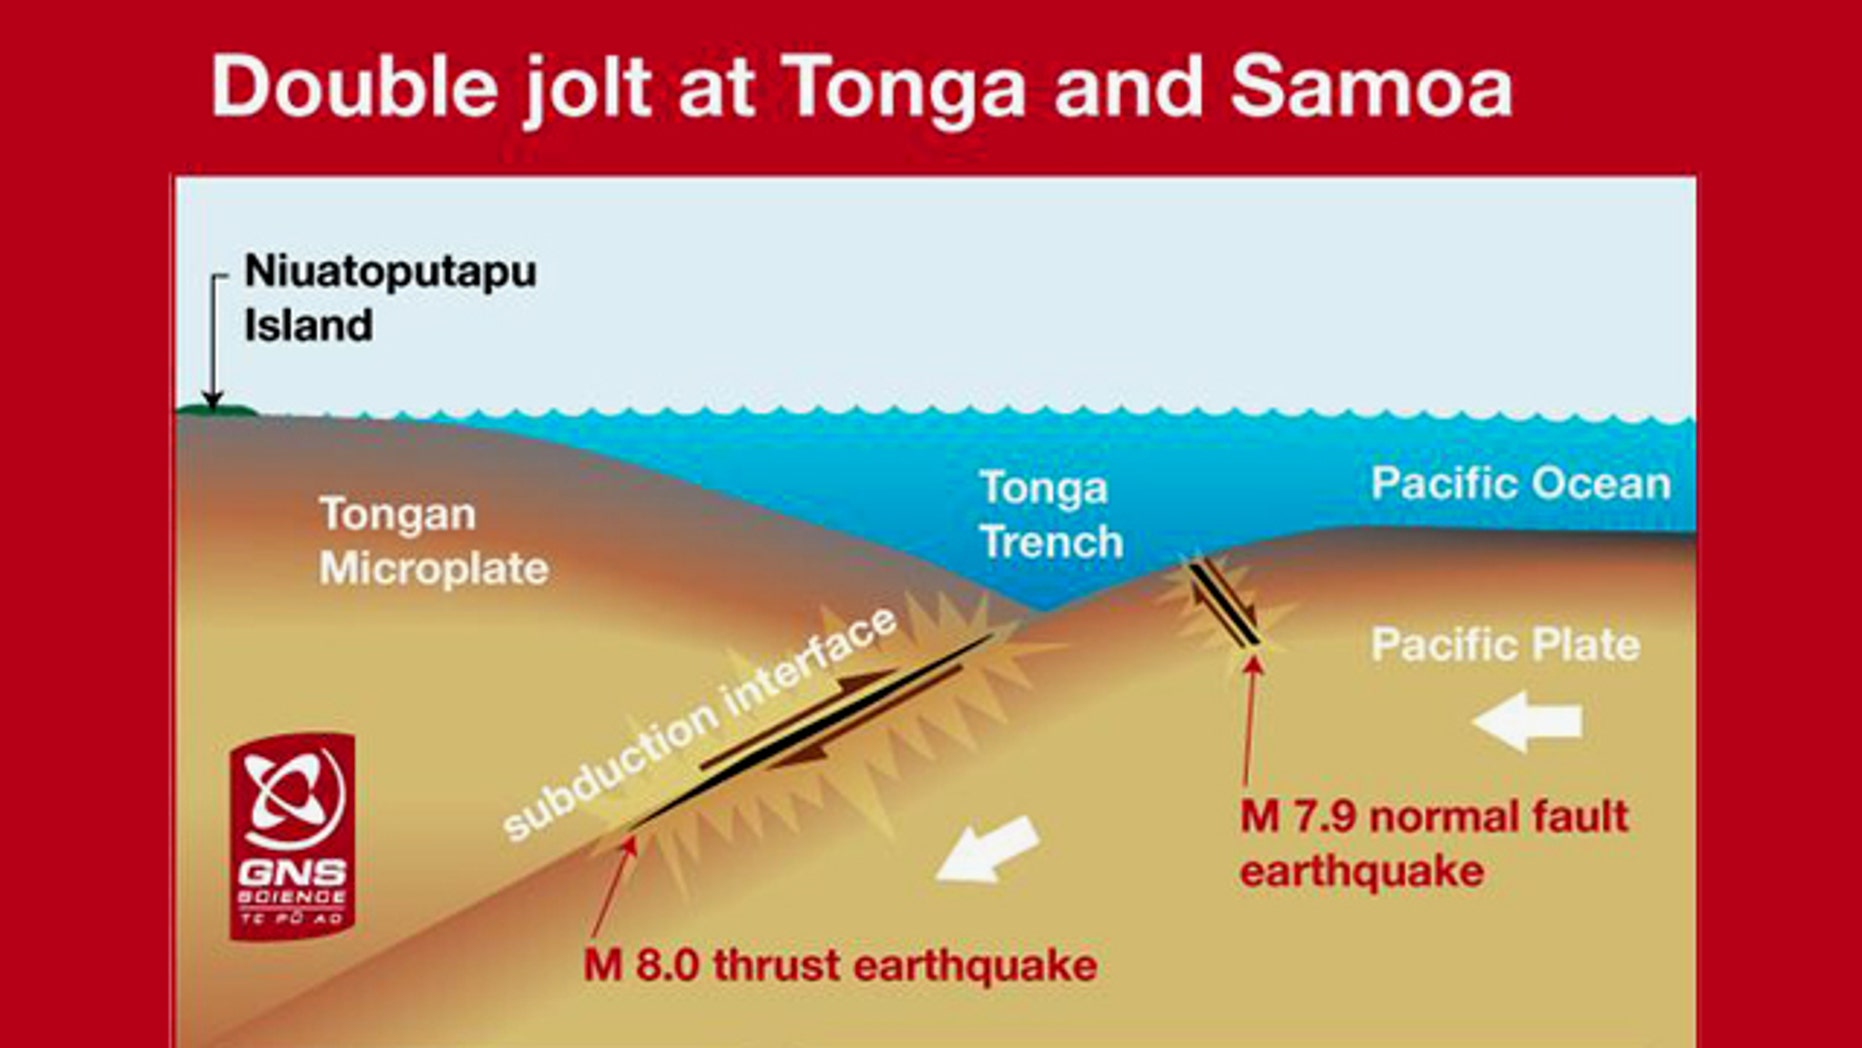 Using land-based GPS measurements on an outlying Tongan island and wave measurements from Pacific sensors, scientists have deduced that the tsunami that devastated Samoan and Northern Tongan islands in 2009 was caused by two earthquakes, not one.